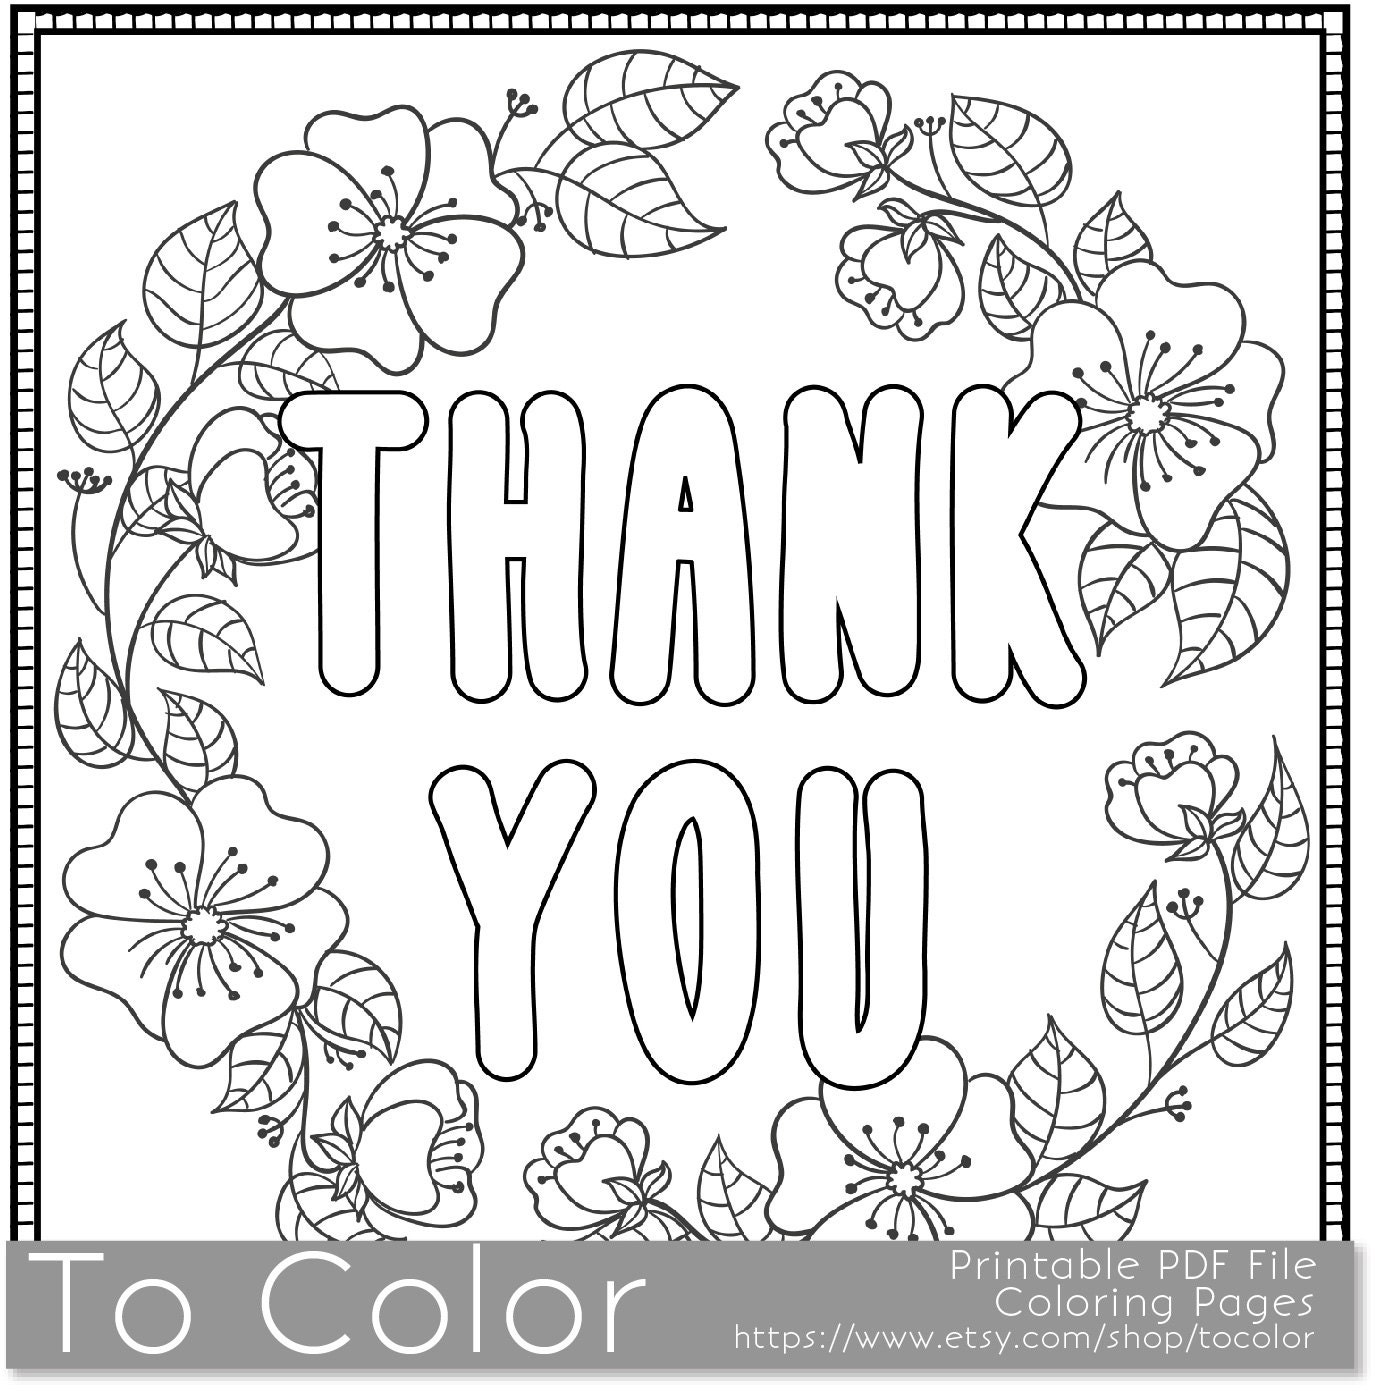 Printable Coloring Thank You Cards : Thank You Printable Coloring Page for Adults PDF / JPG